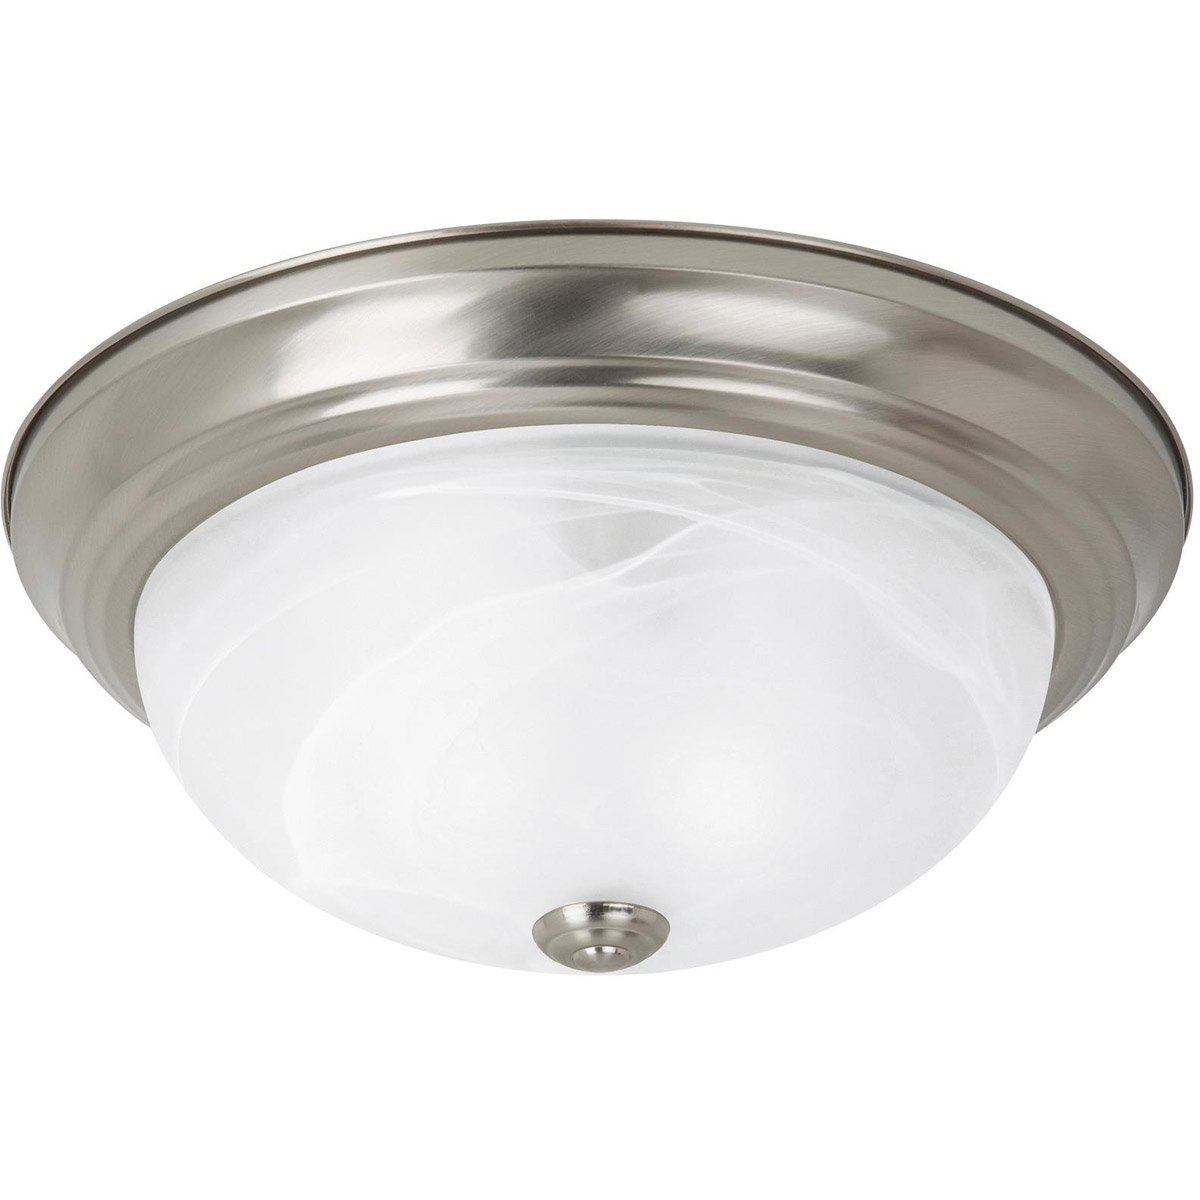 Sea Gull 75942-962 Windgate 2 Light 13 inch Brushed Nickel Flush Mount Ceiling Light in Standard photo